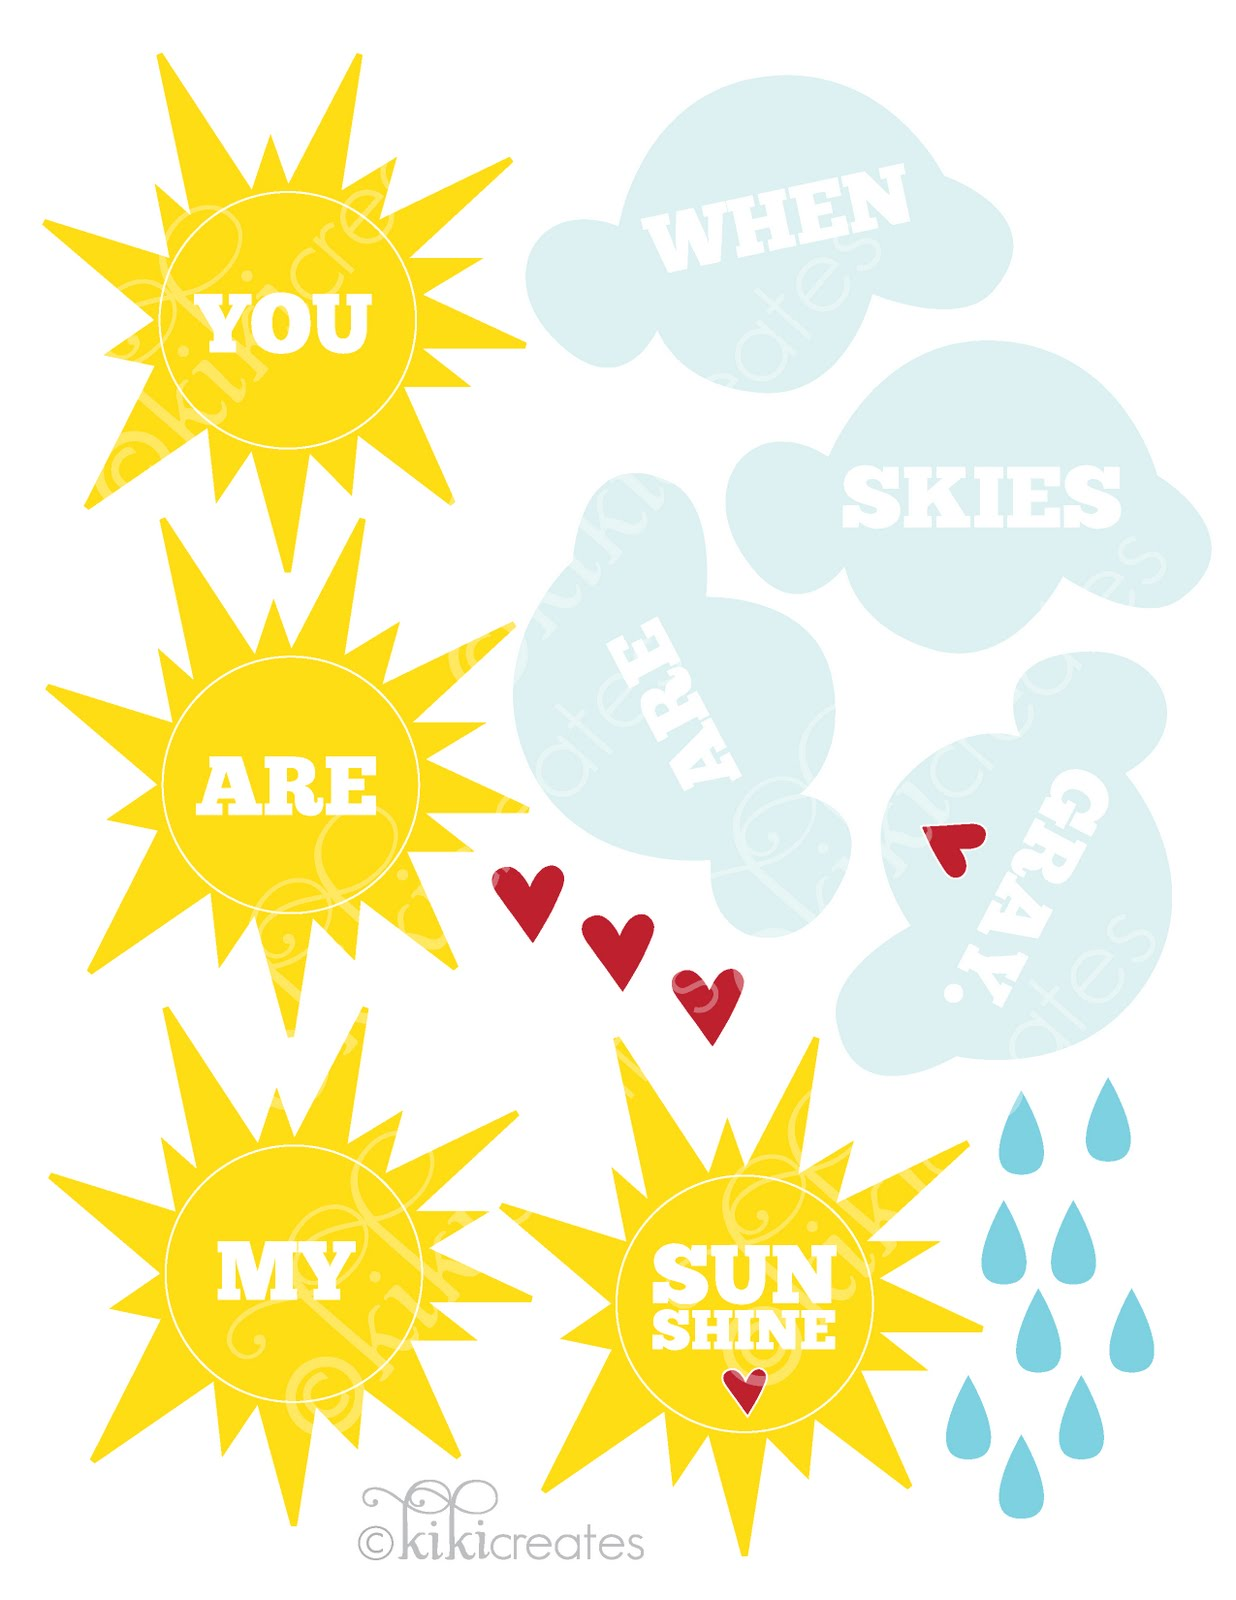 ... : You Are My Sunshine {free download